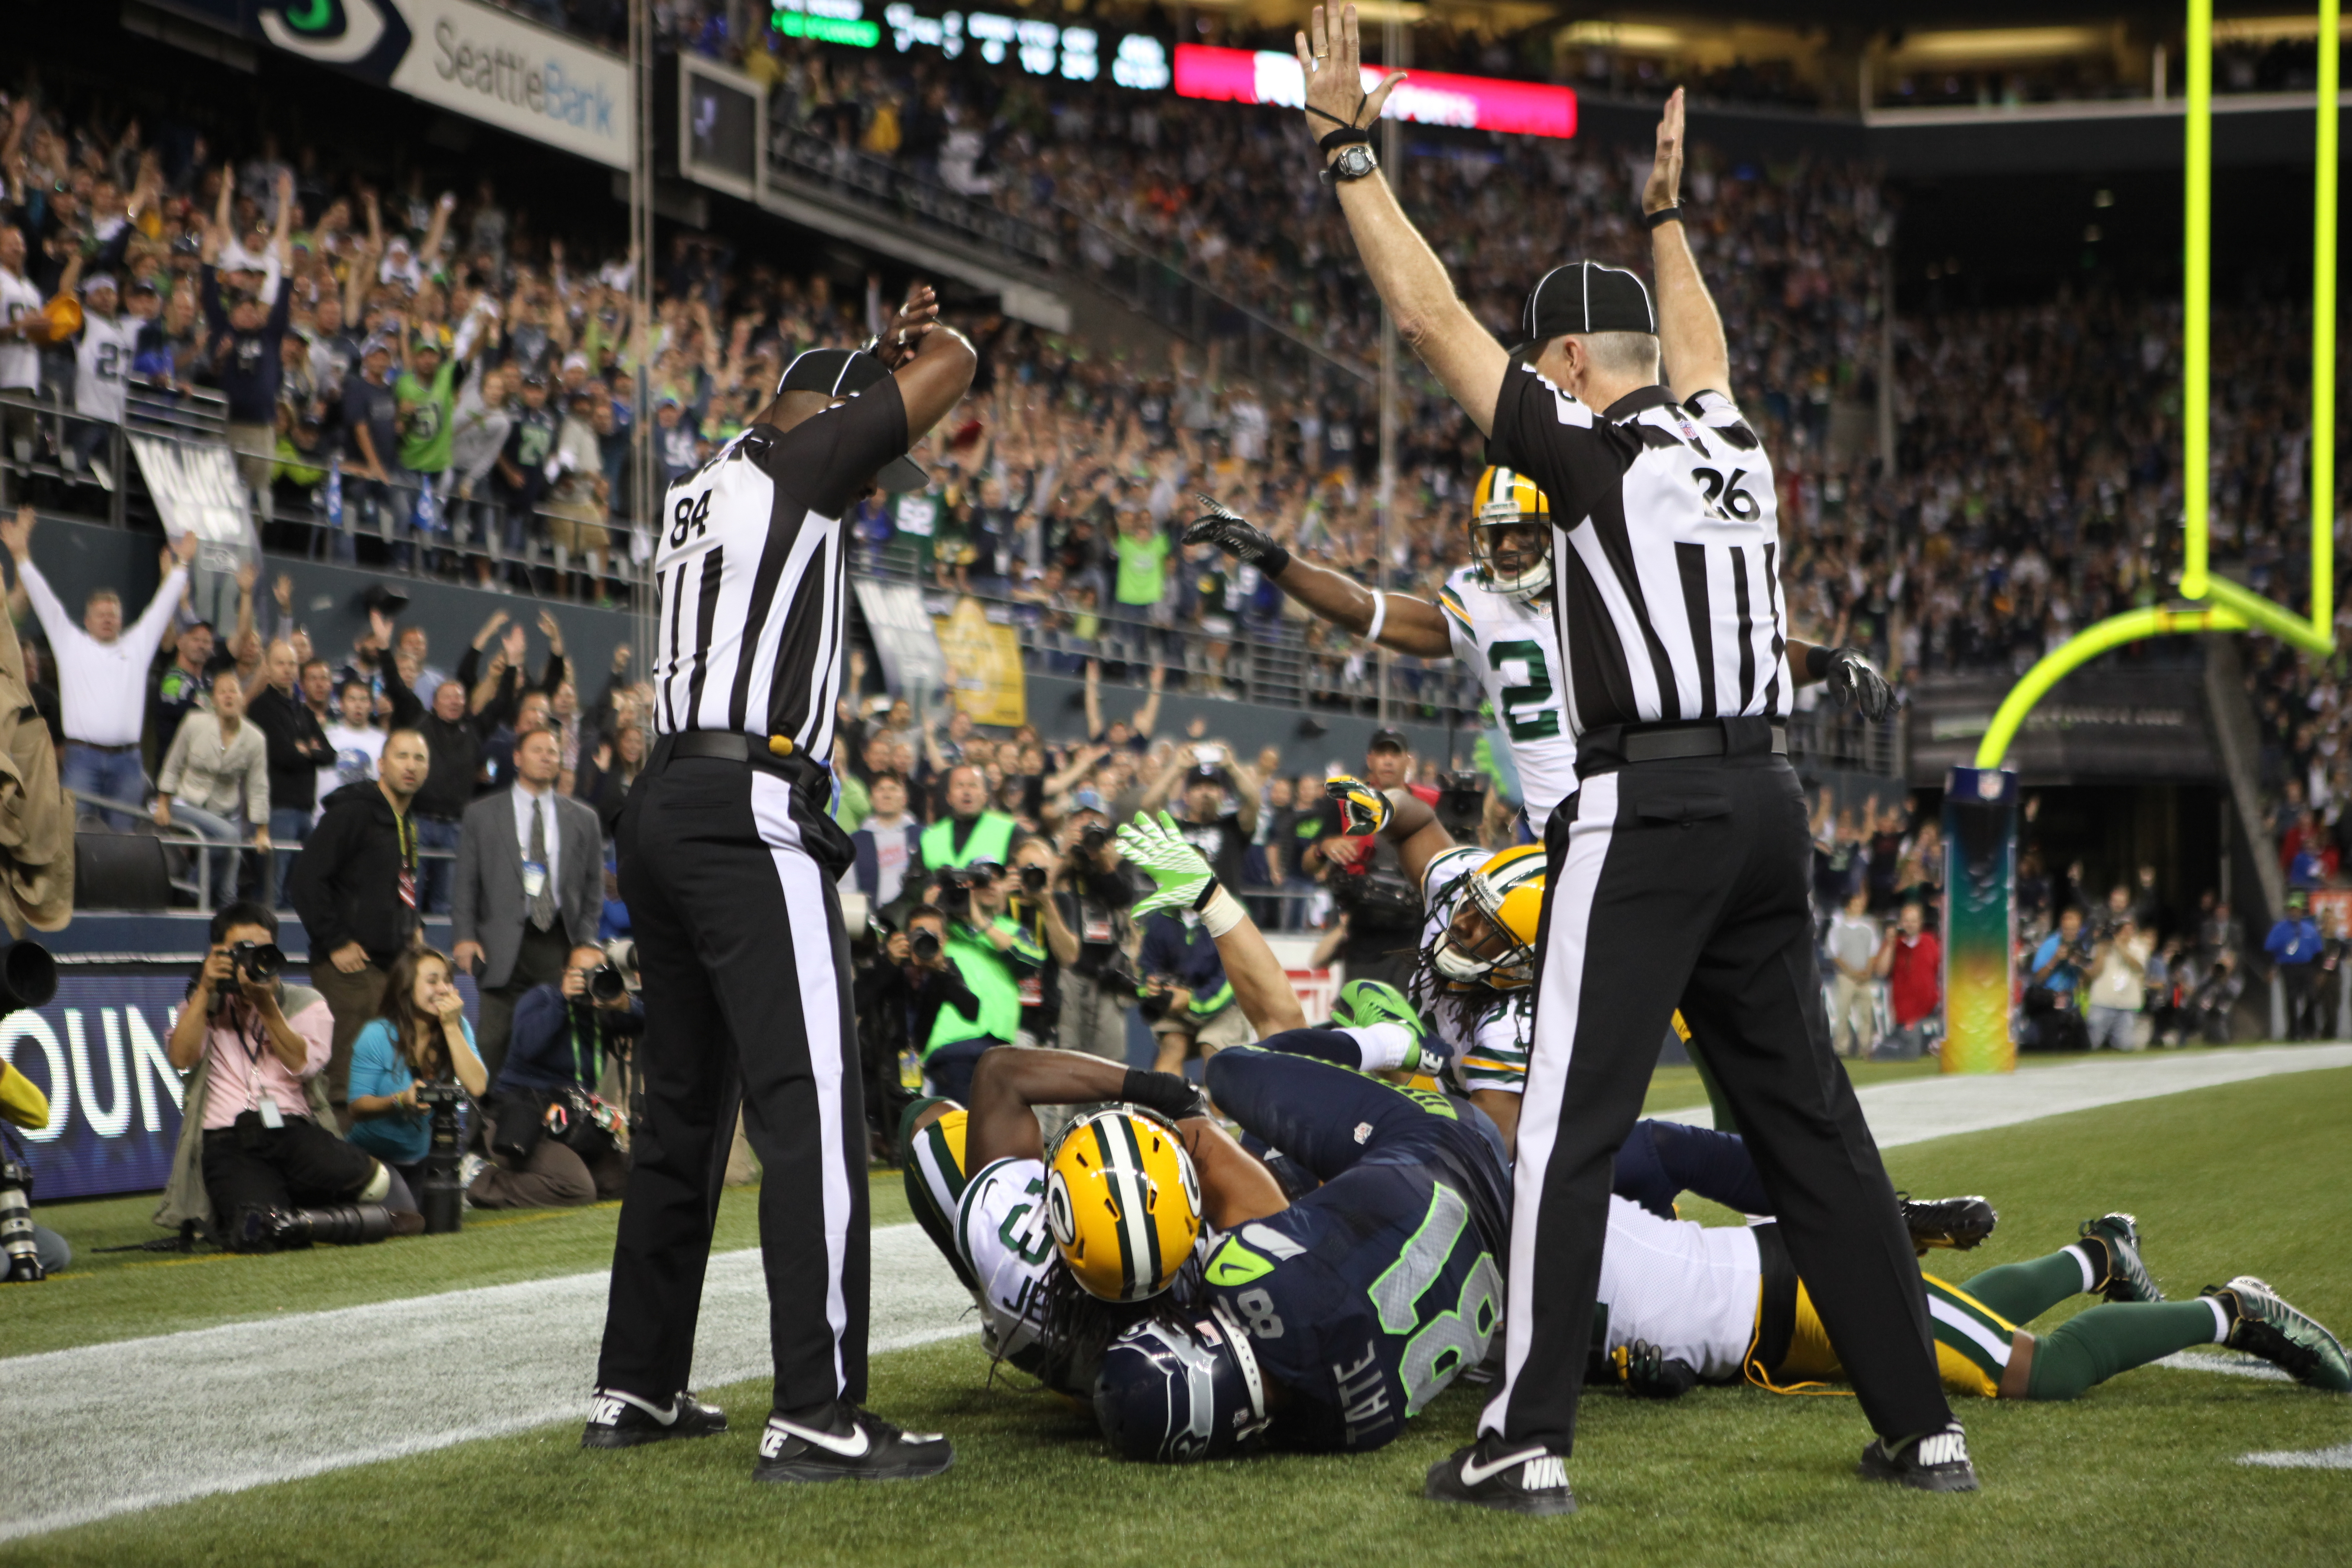 Seattle wide receiver Golden Tate makes a catch in the end zone on the controversial call that made the Seahawks-Packers matchup in 2012 one to remember. (Getty Images)